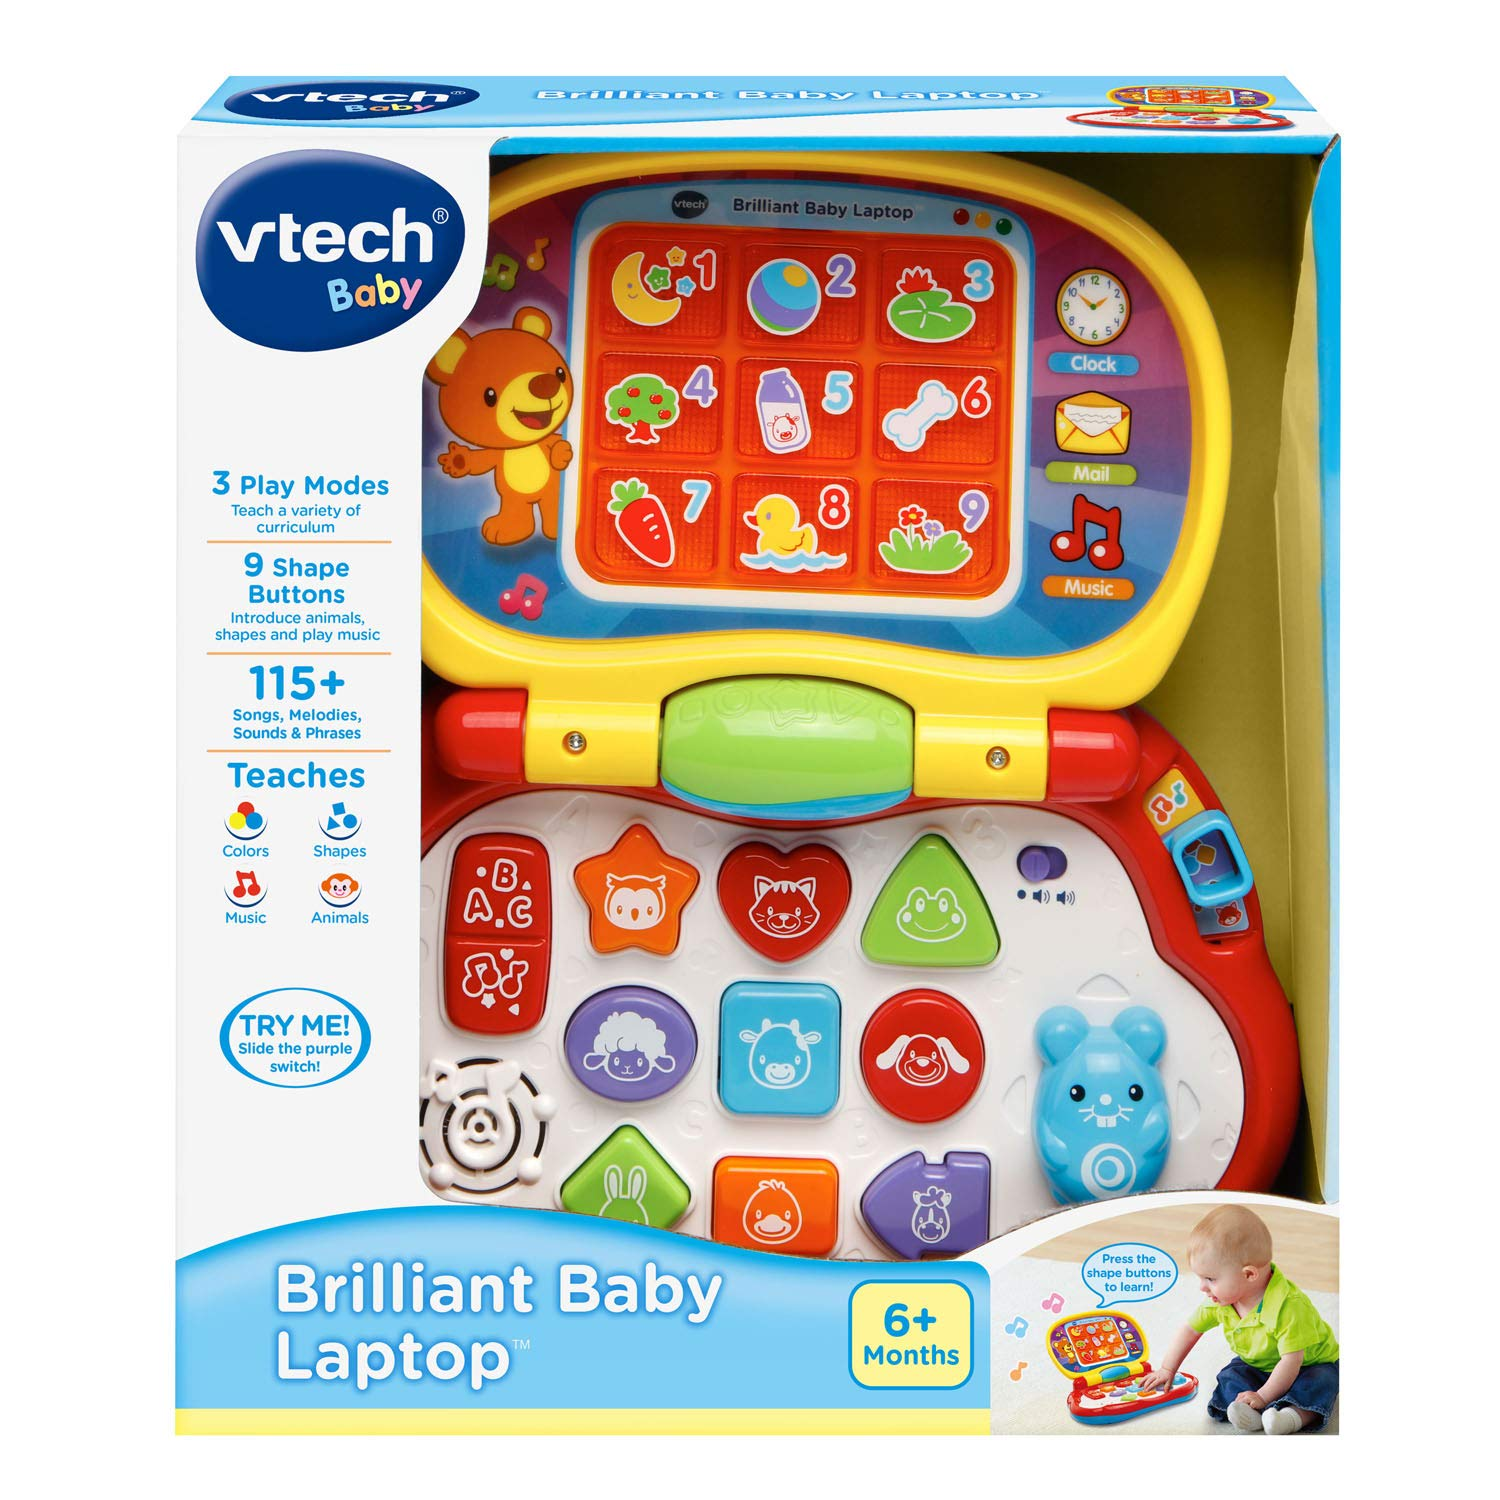 VTech Brilliant Baby Laptop,red by VTech (Image #7)